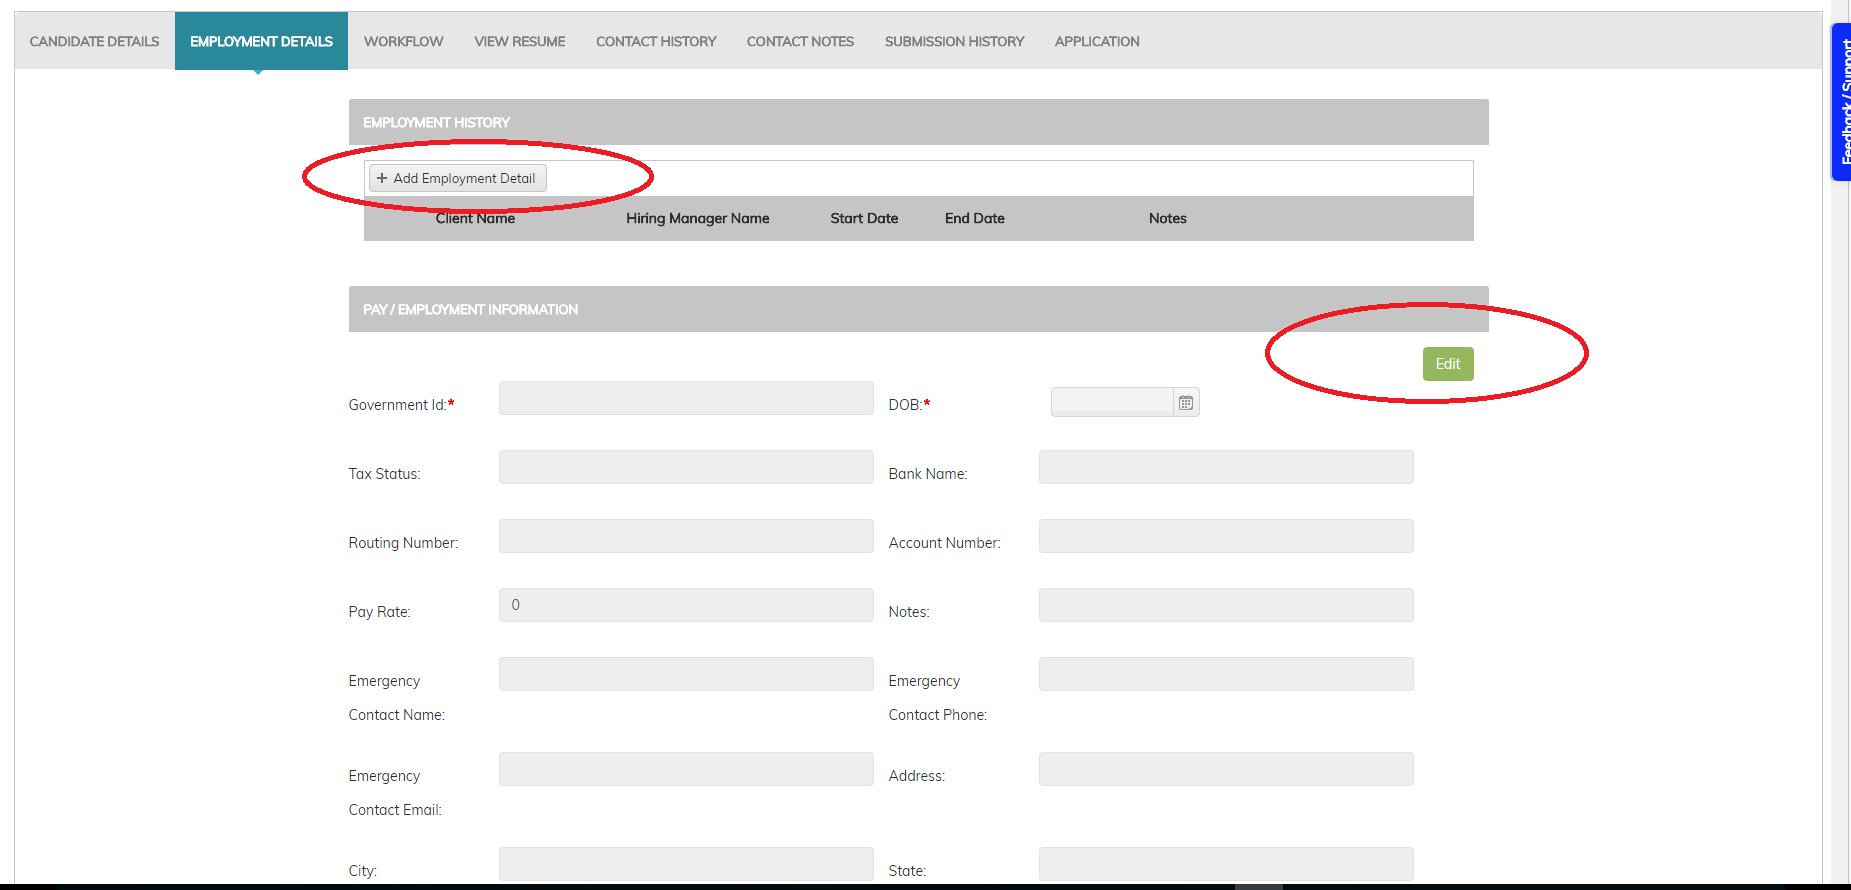 Recruiteze Applicant Tracking System: Employment Details Tab